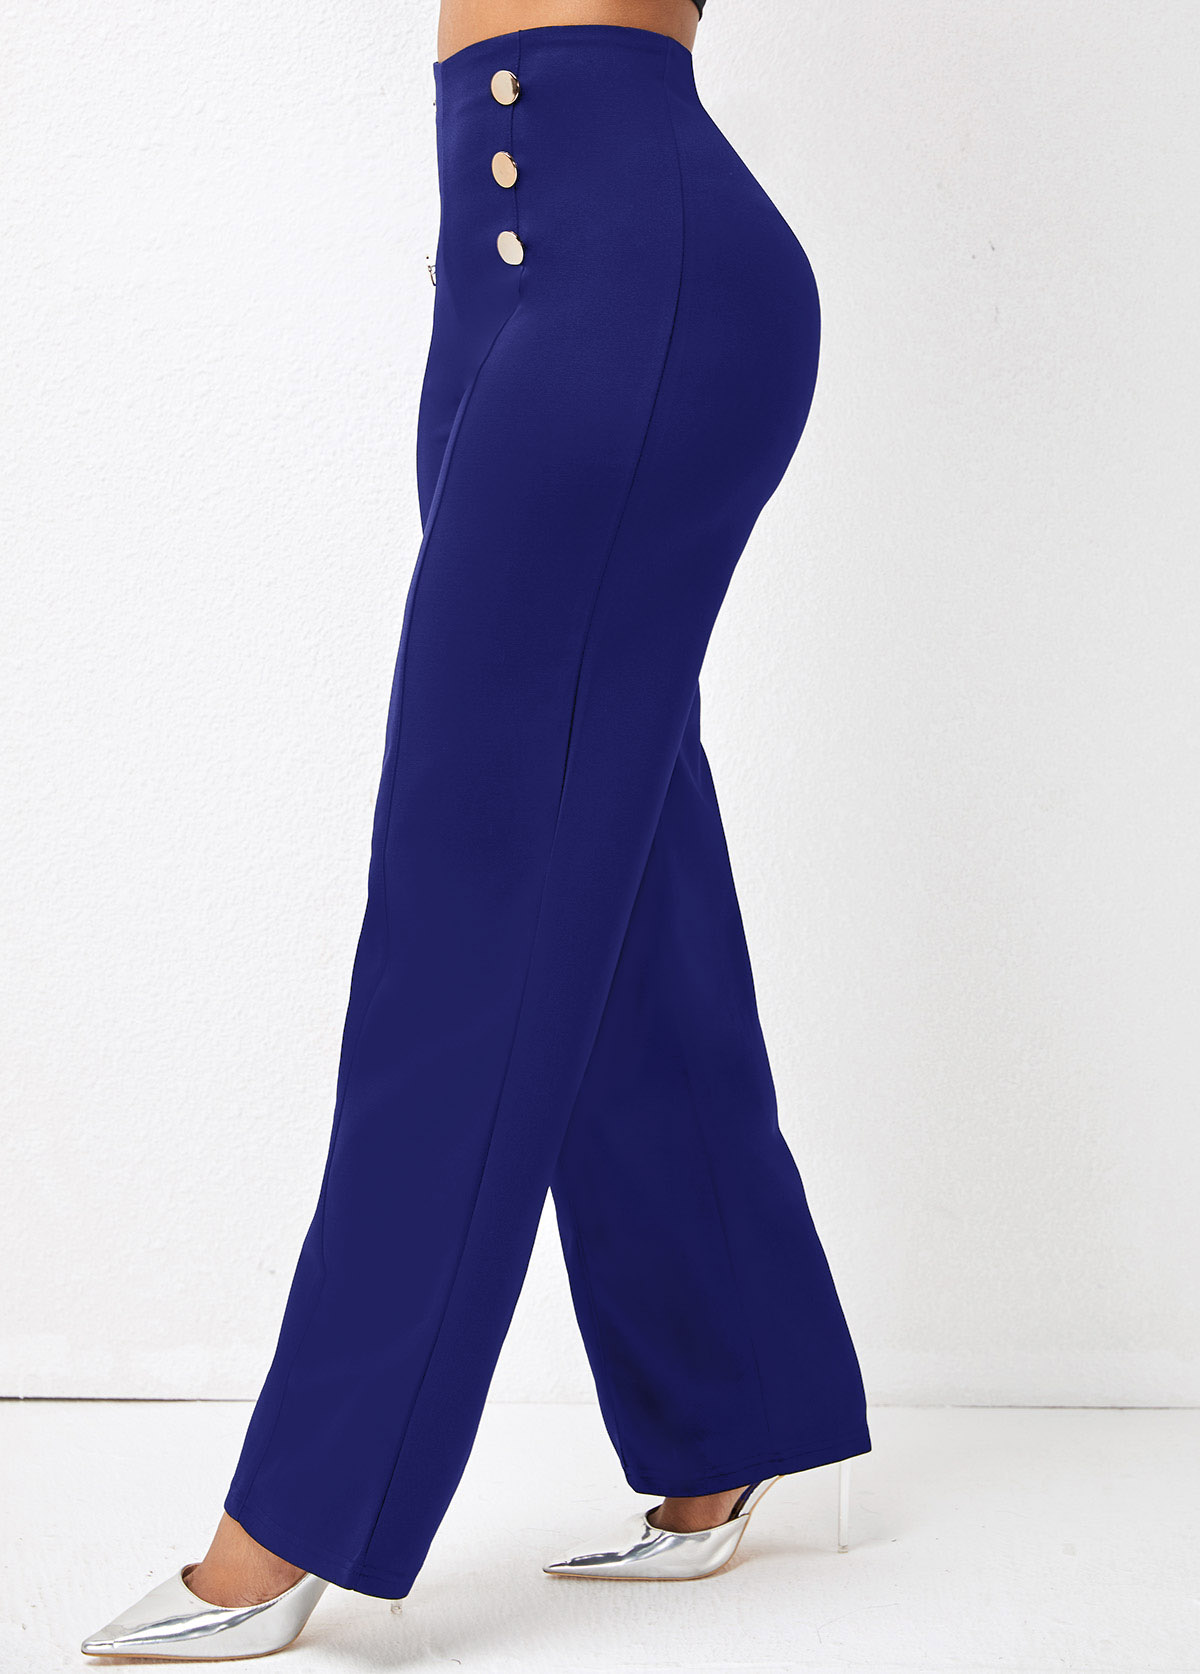 Double Breasted Solid High Waisted Pants